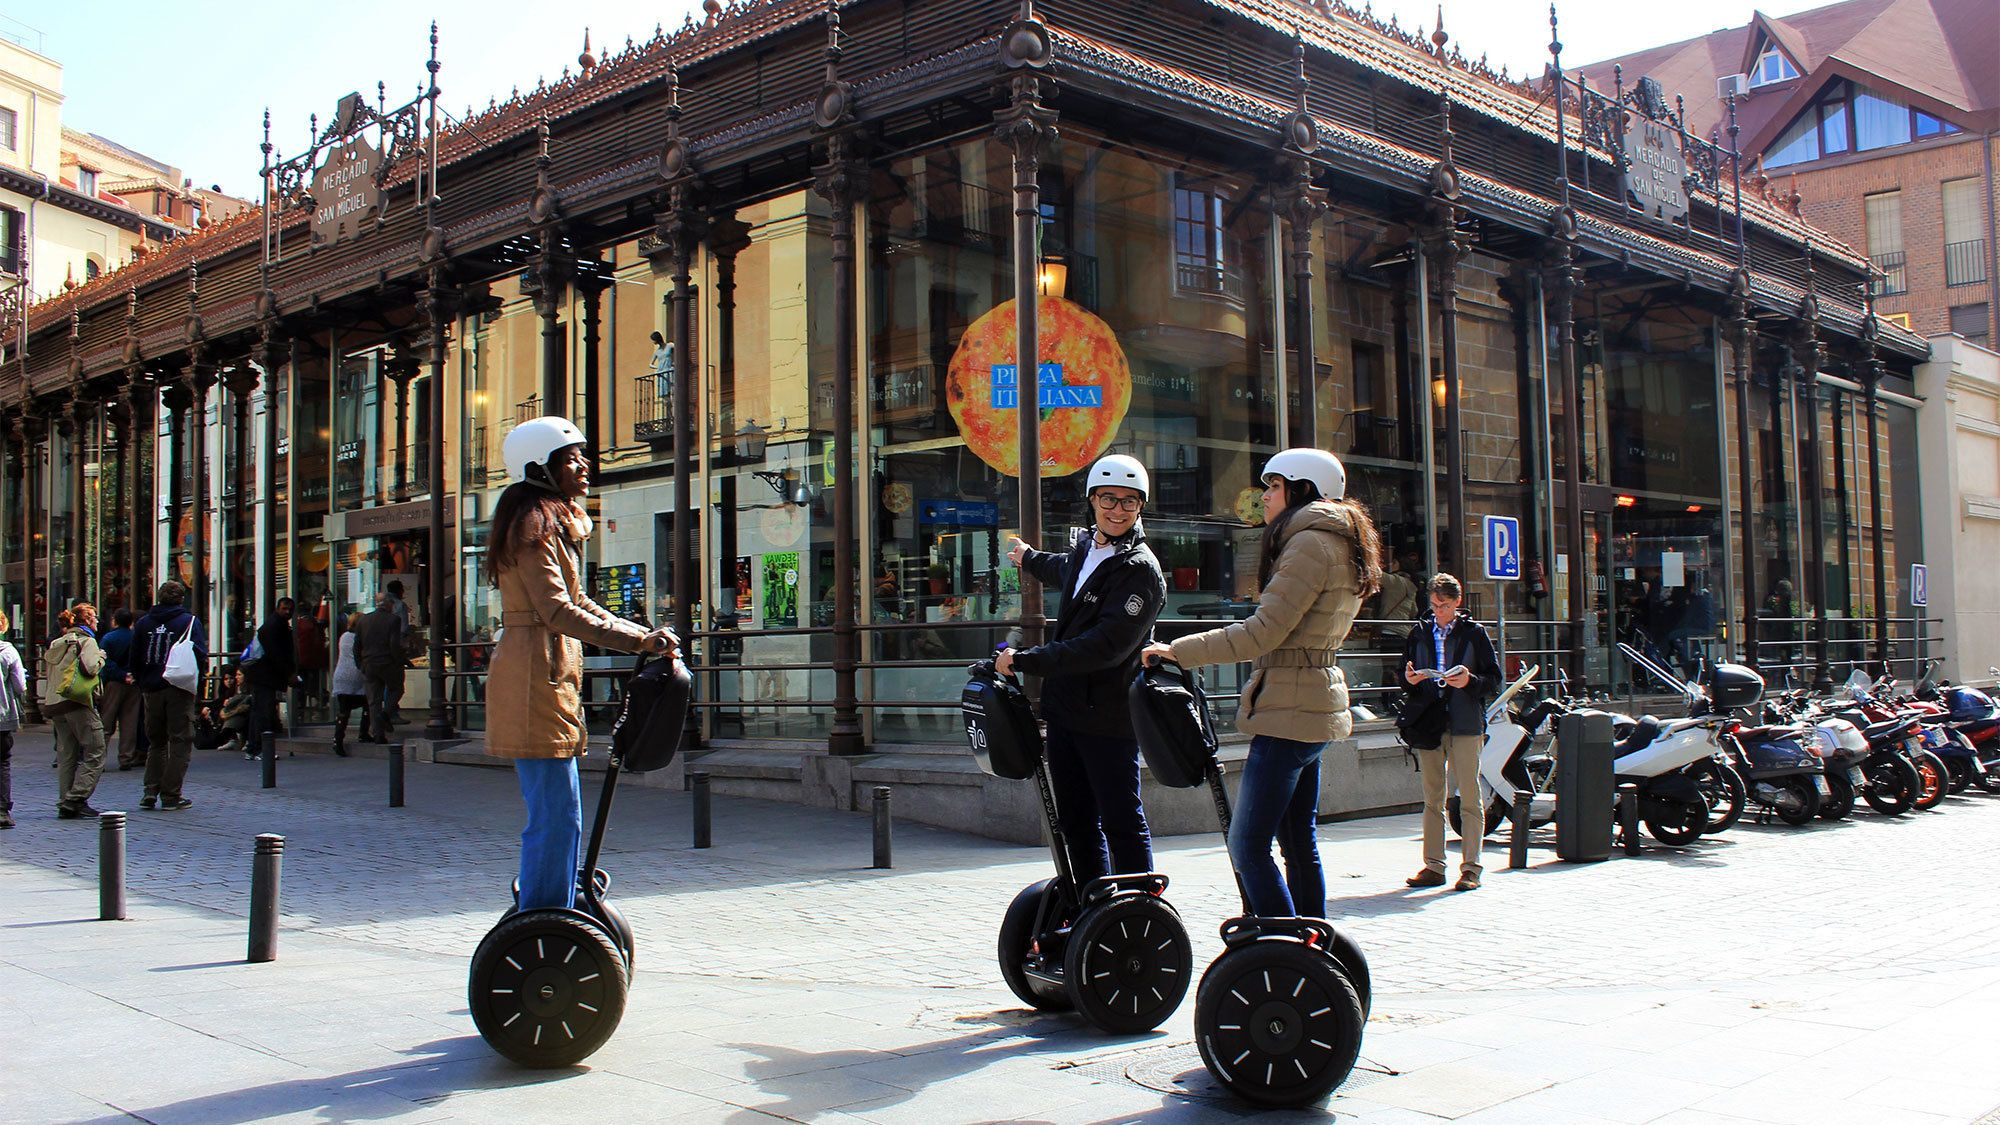 Day view of the Barcelona Segway Tour